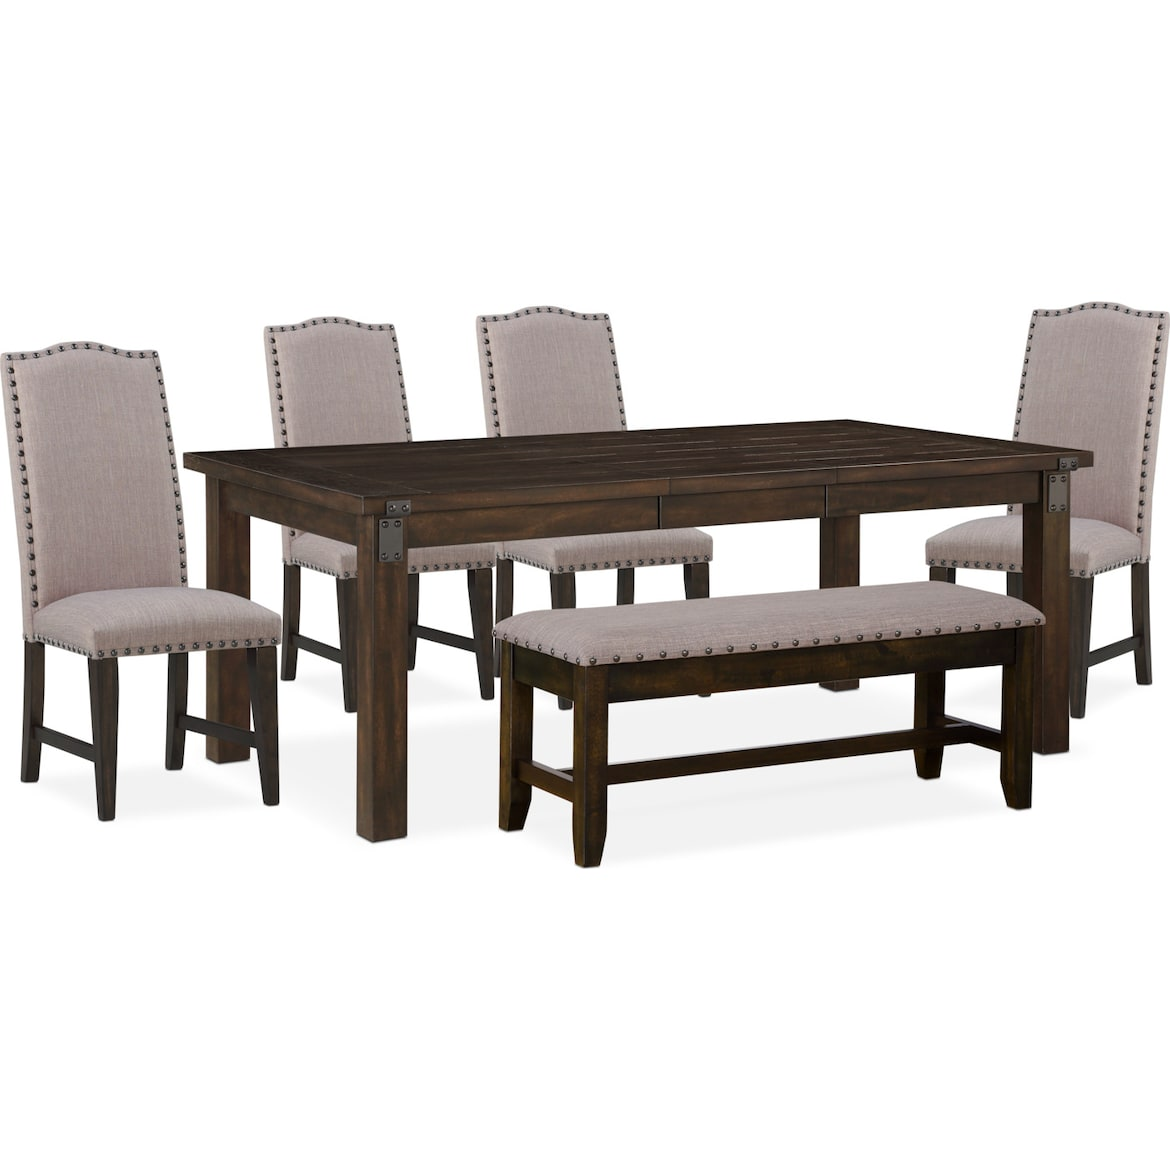 Dining Table Storage Bench: Hampton Dining Table, 4 Upholstered Side Chairs And